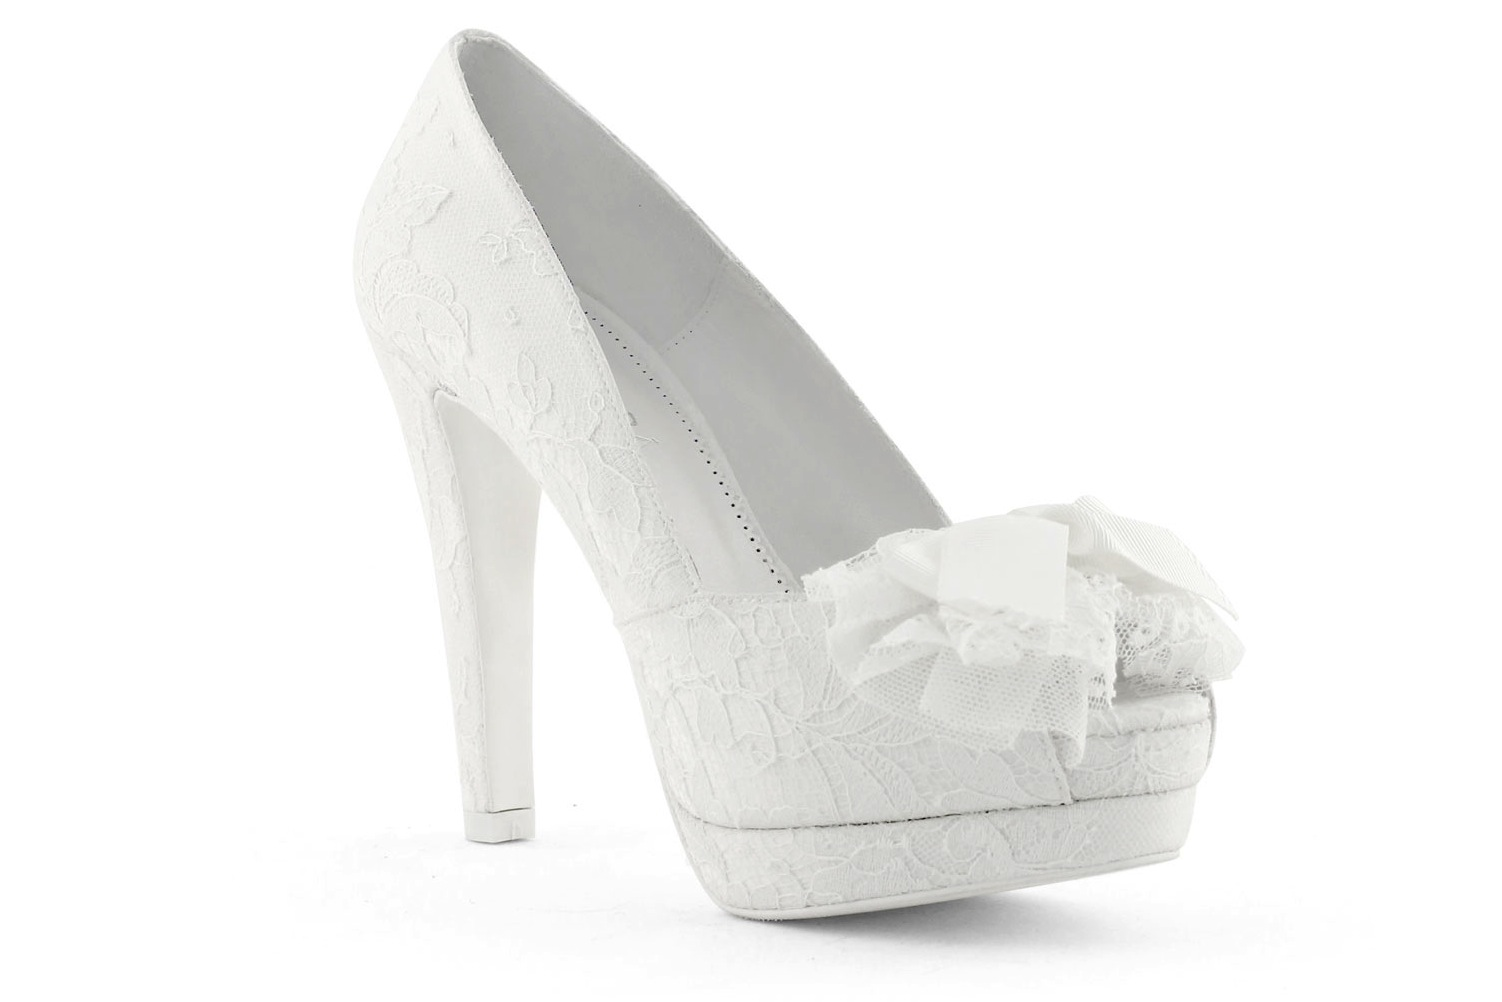 Wedding-shoes-bridal-heels-by-rosa-clara-2013-8.original